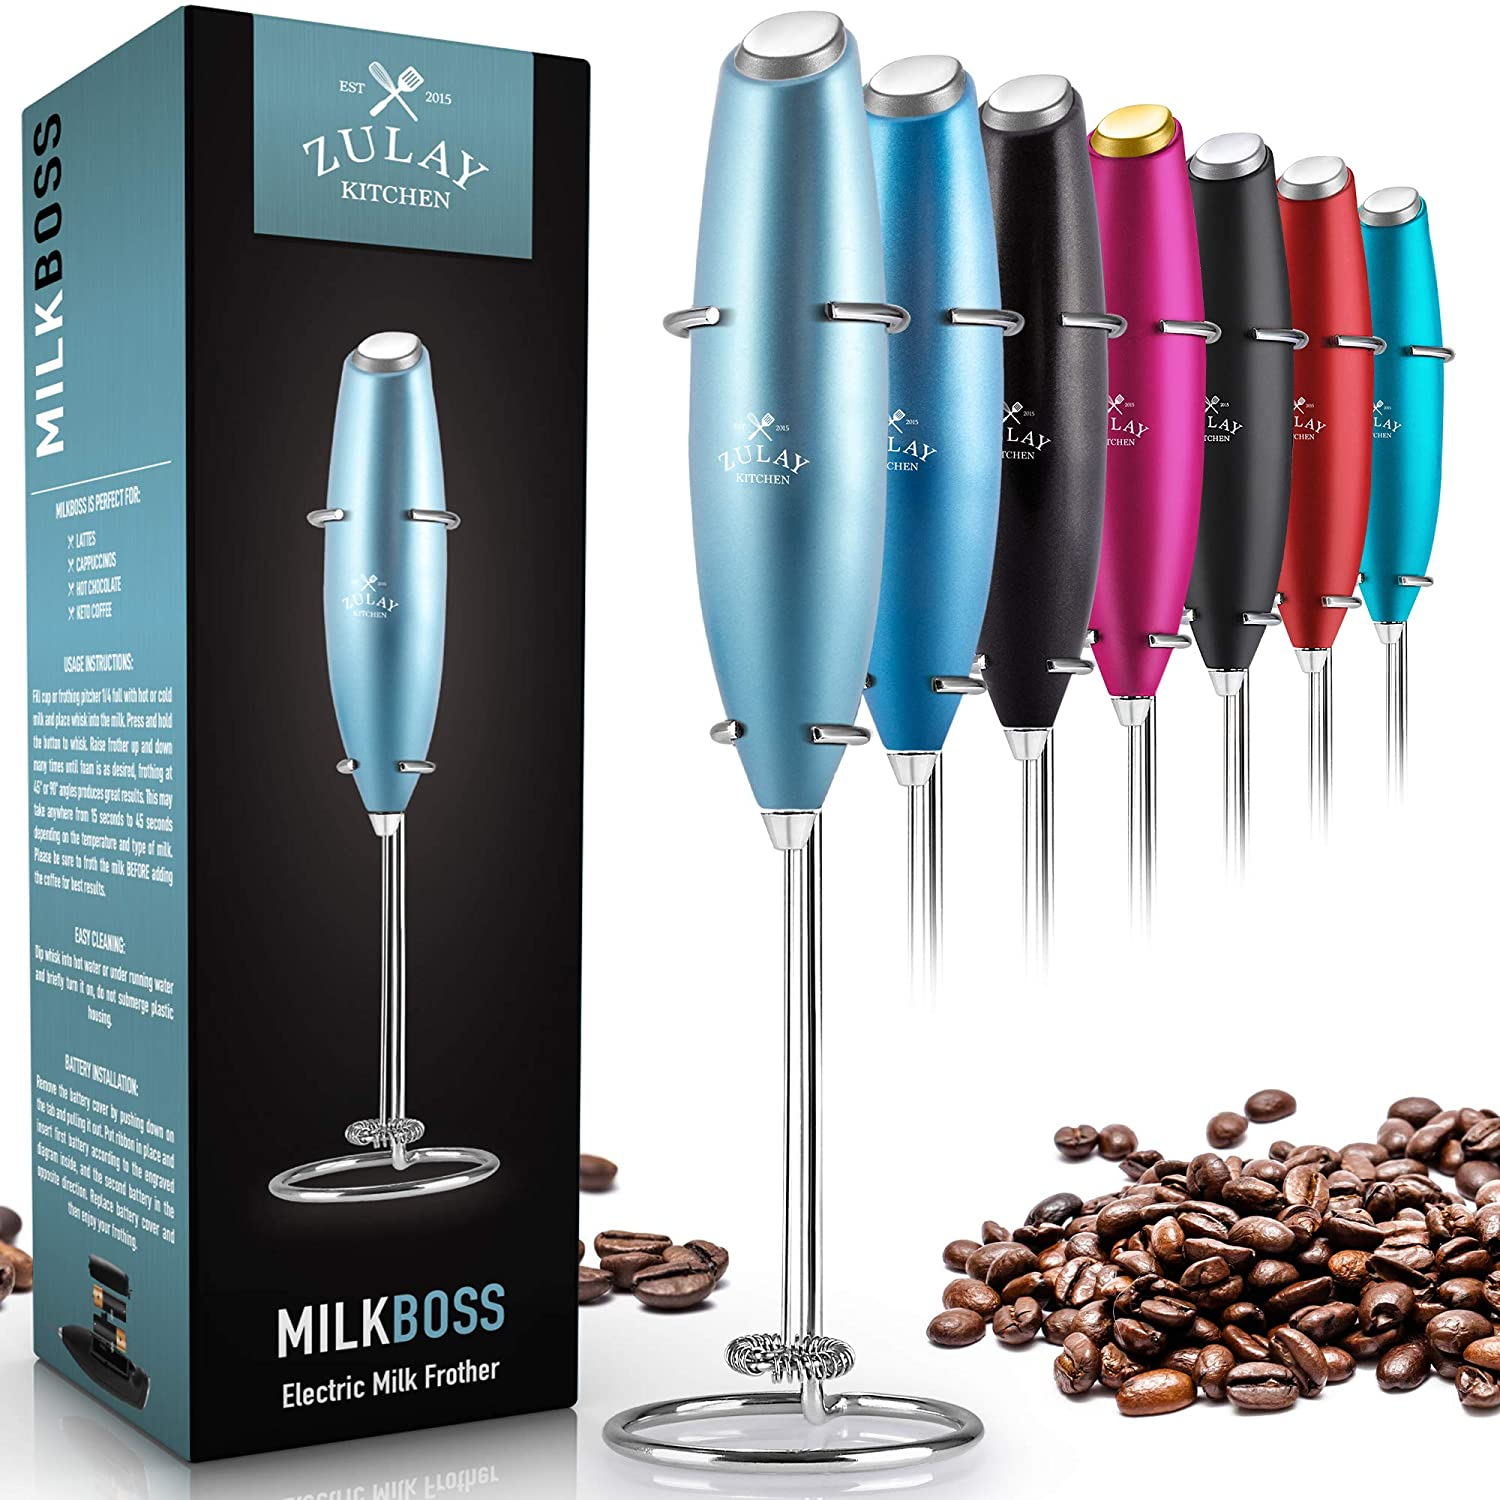 Zulay Original Milk Frother Handheld Foam Maker for Lattes - Whisk Drink Mixer for Bulletproof® Coffee, Mini Foamer for Cappuccino, Frappe, Matcha, Hot Chocolate by Milk Boss - Metallic Ice Blue